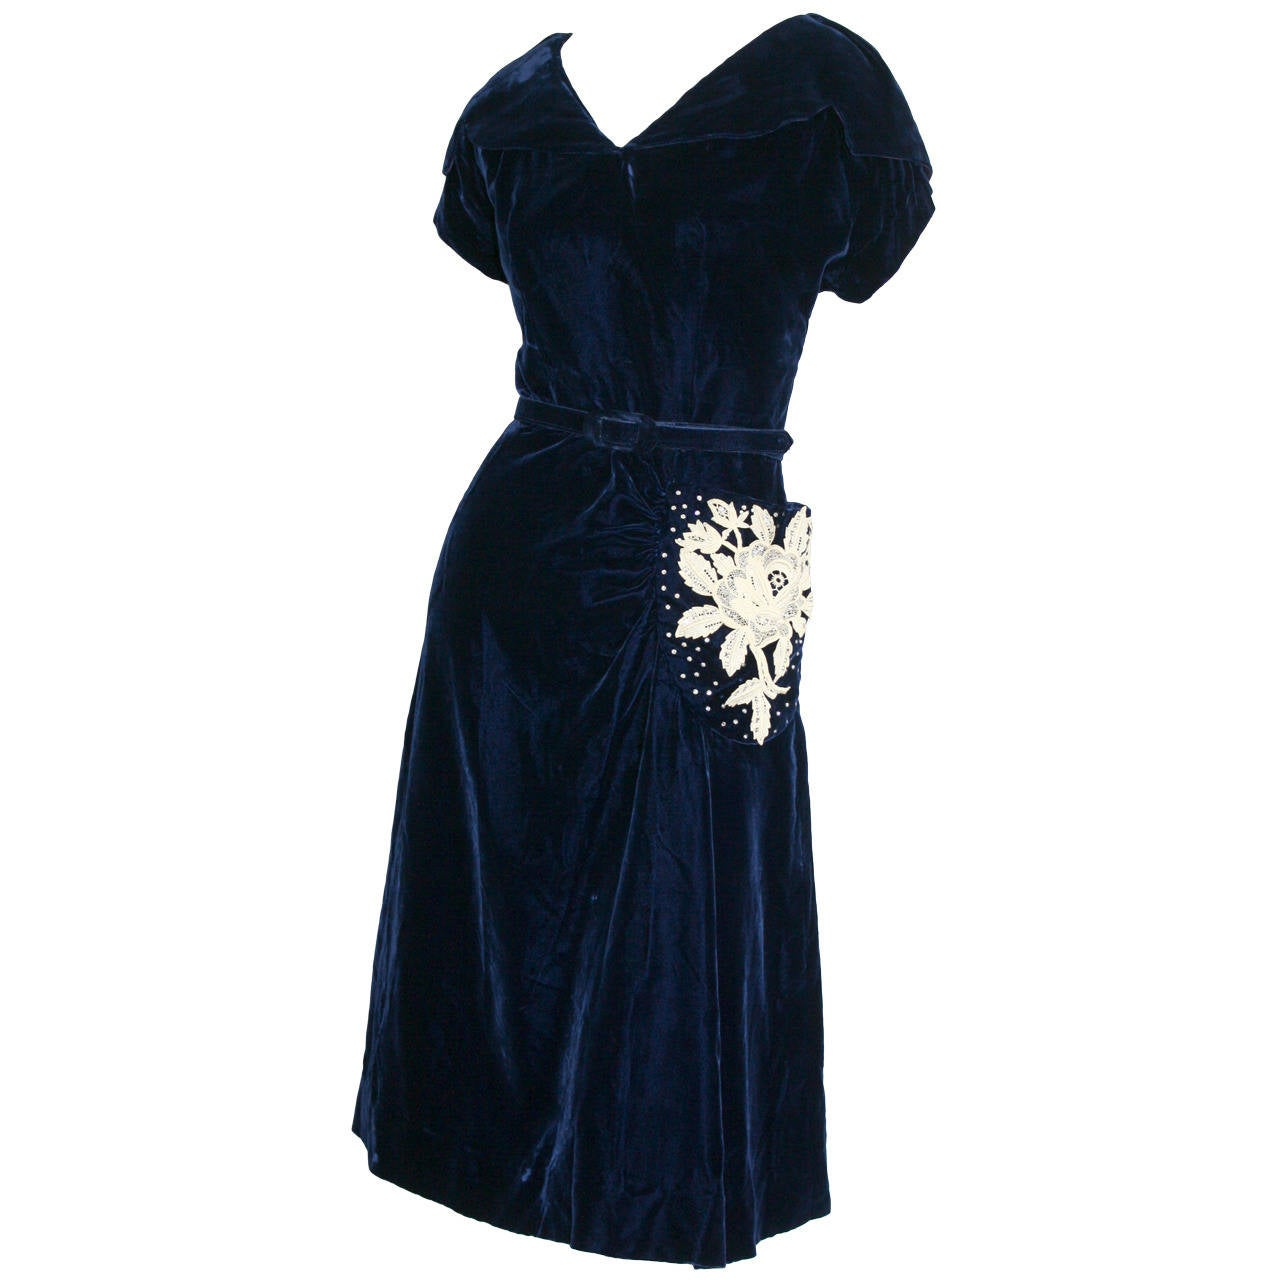 Beautiful 1940s Vintage Royal Blue Silk Velvet Dress w/ Lace & Rhinestones 1